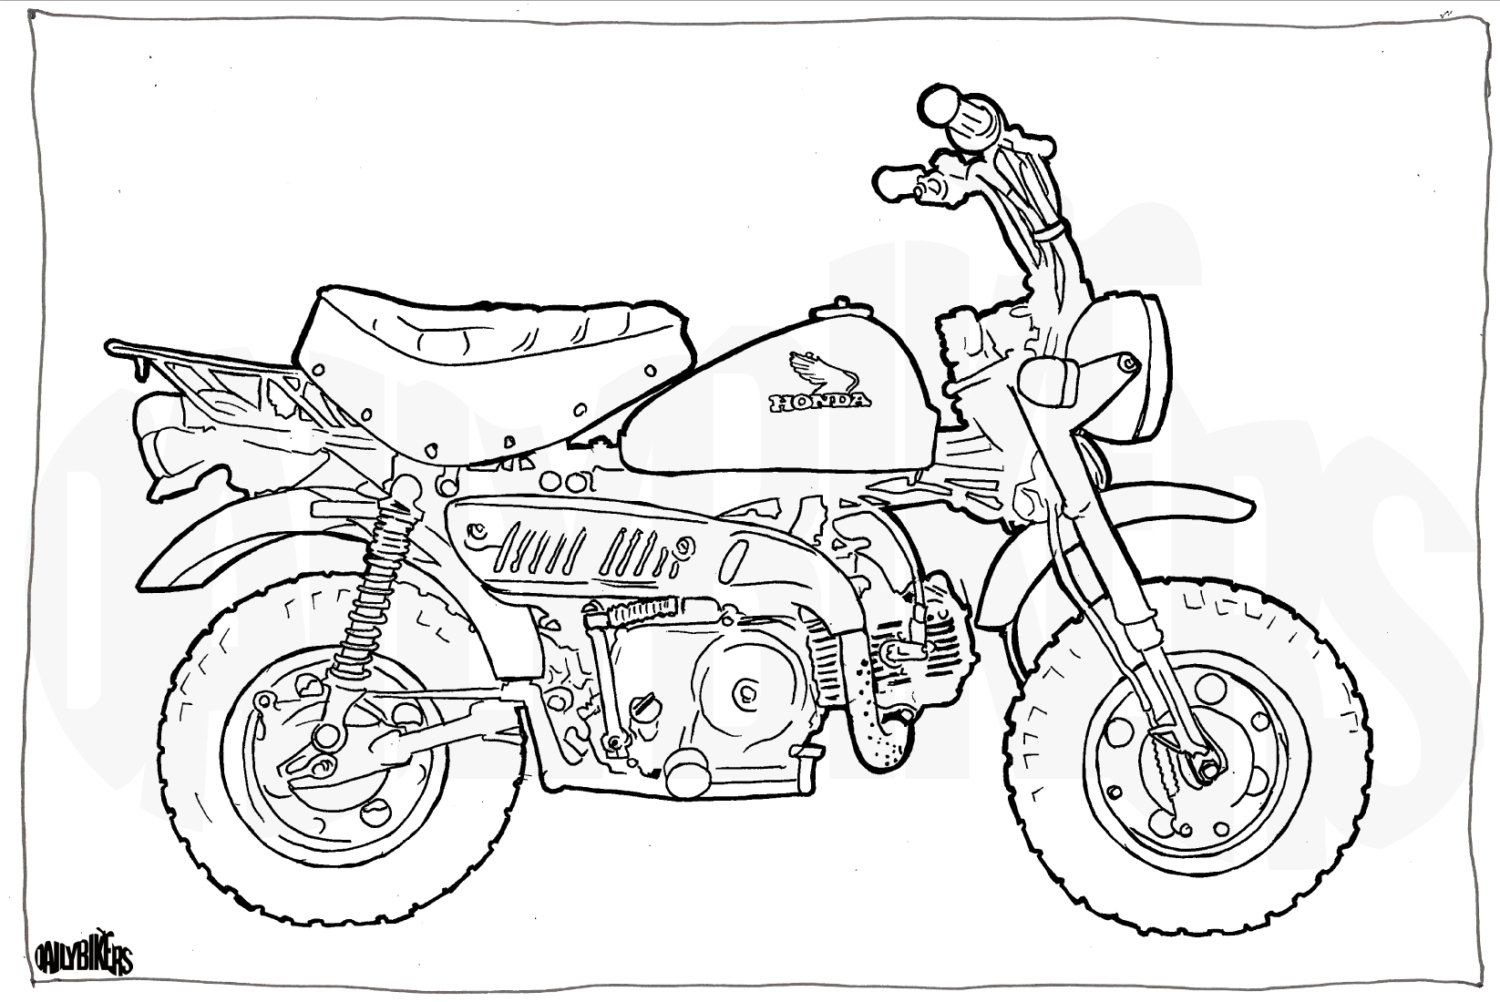 honda z50 minibike colouring page - motorcycle illustration